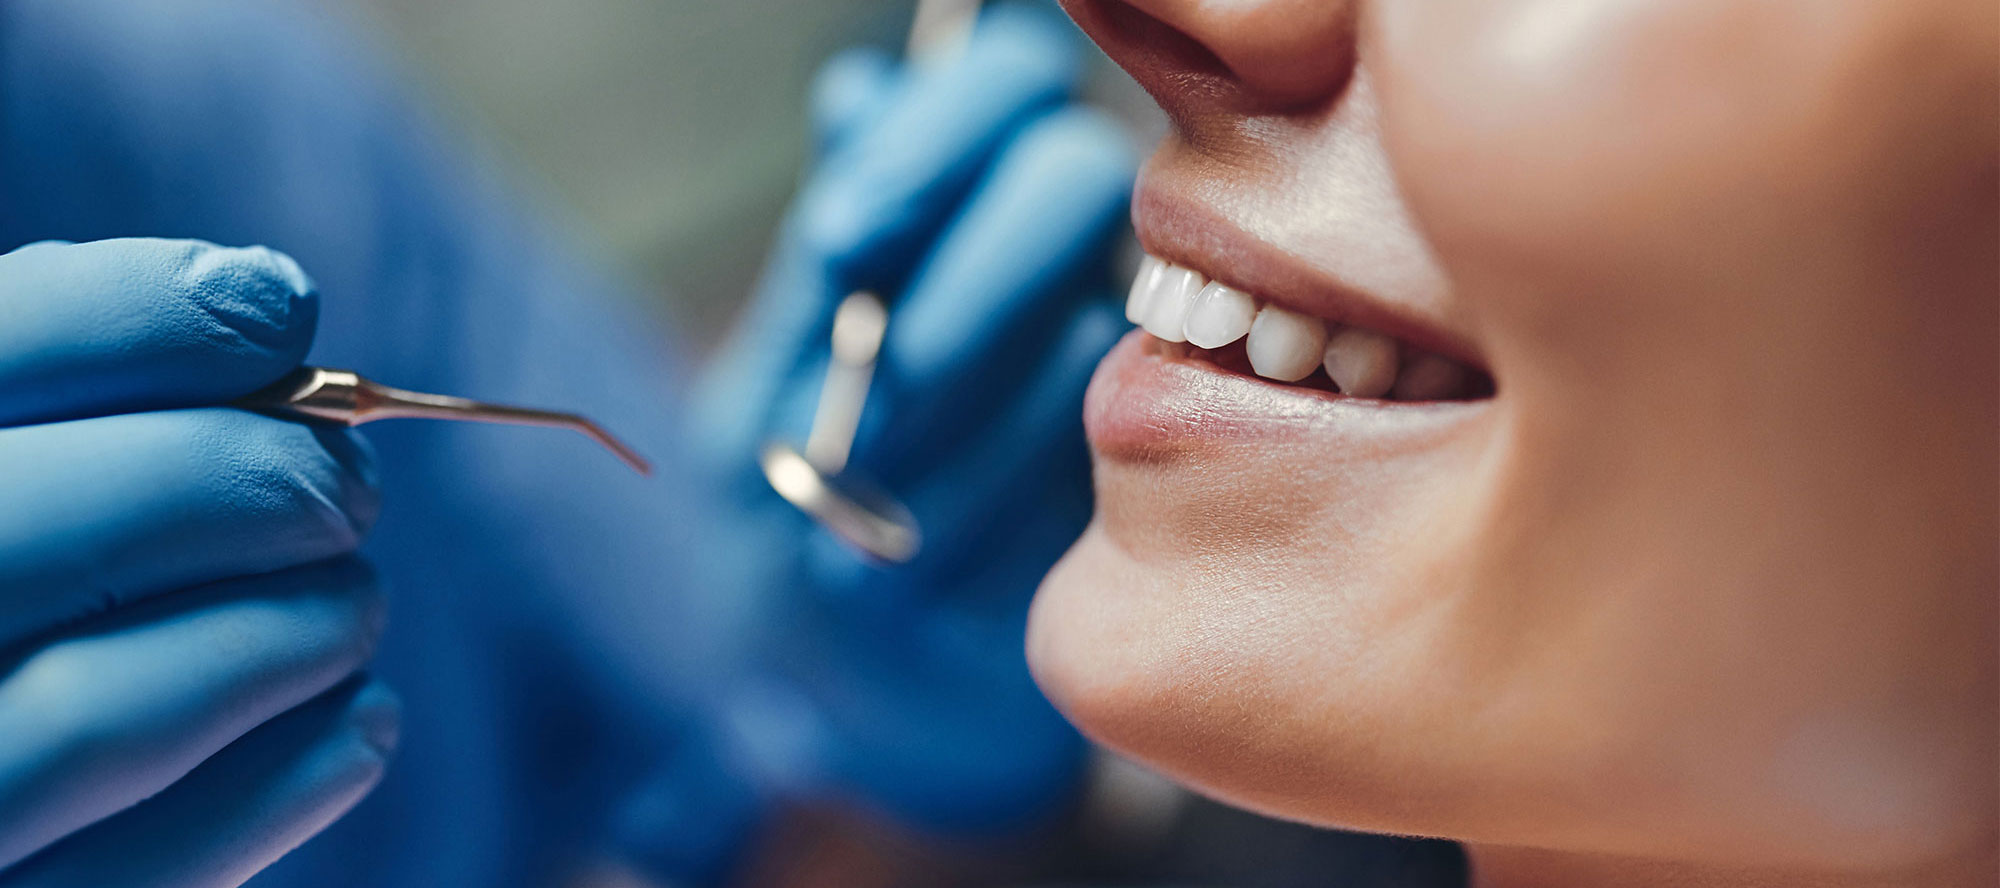 Dentists must improve marketing to remain profitable post-lockdown